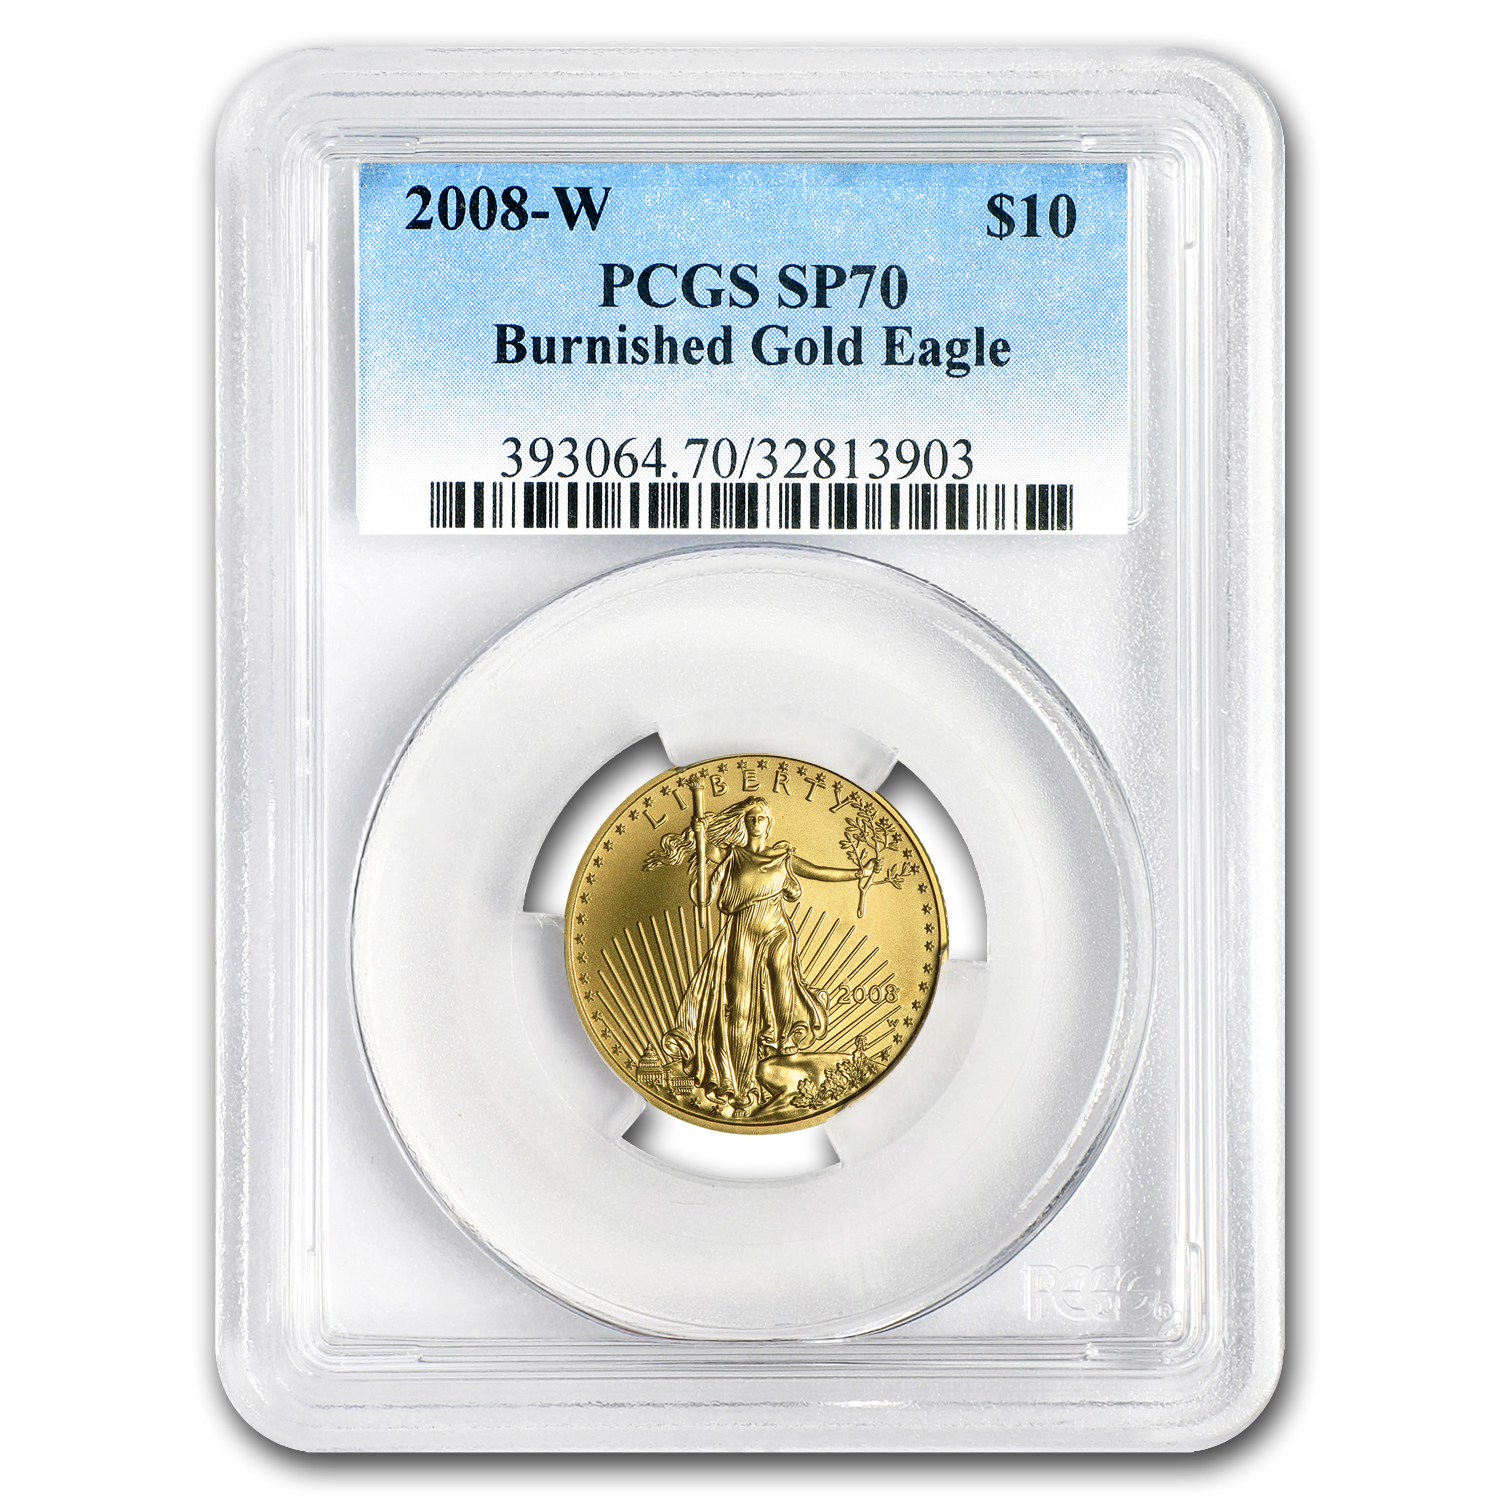 2008-W 1/4 oz Burnished Gold American Eagle MS-70 PCGS